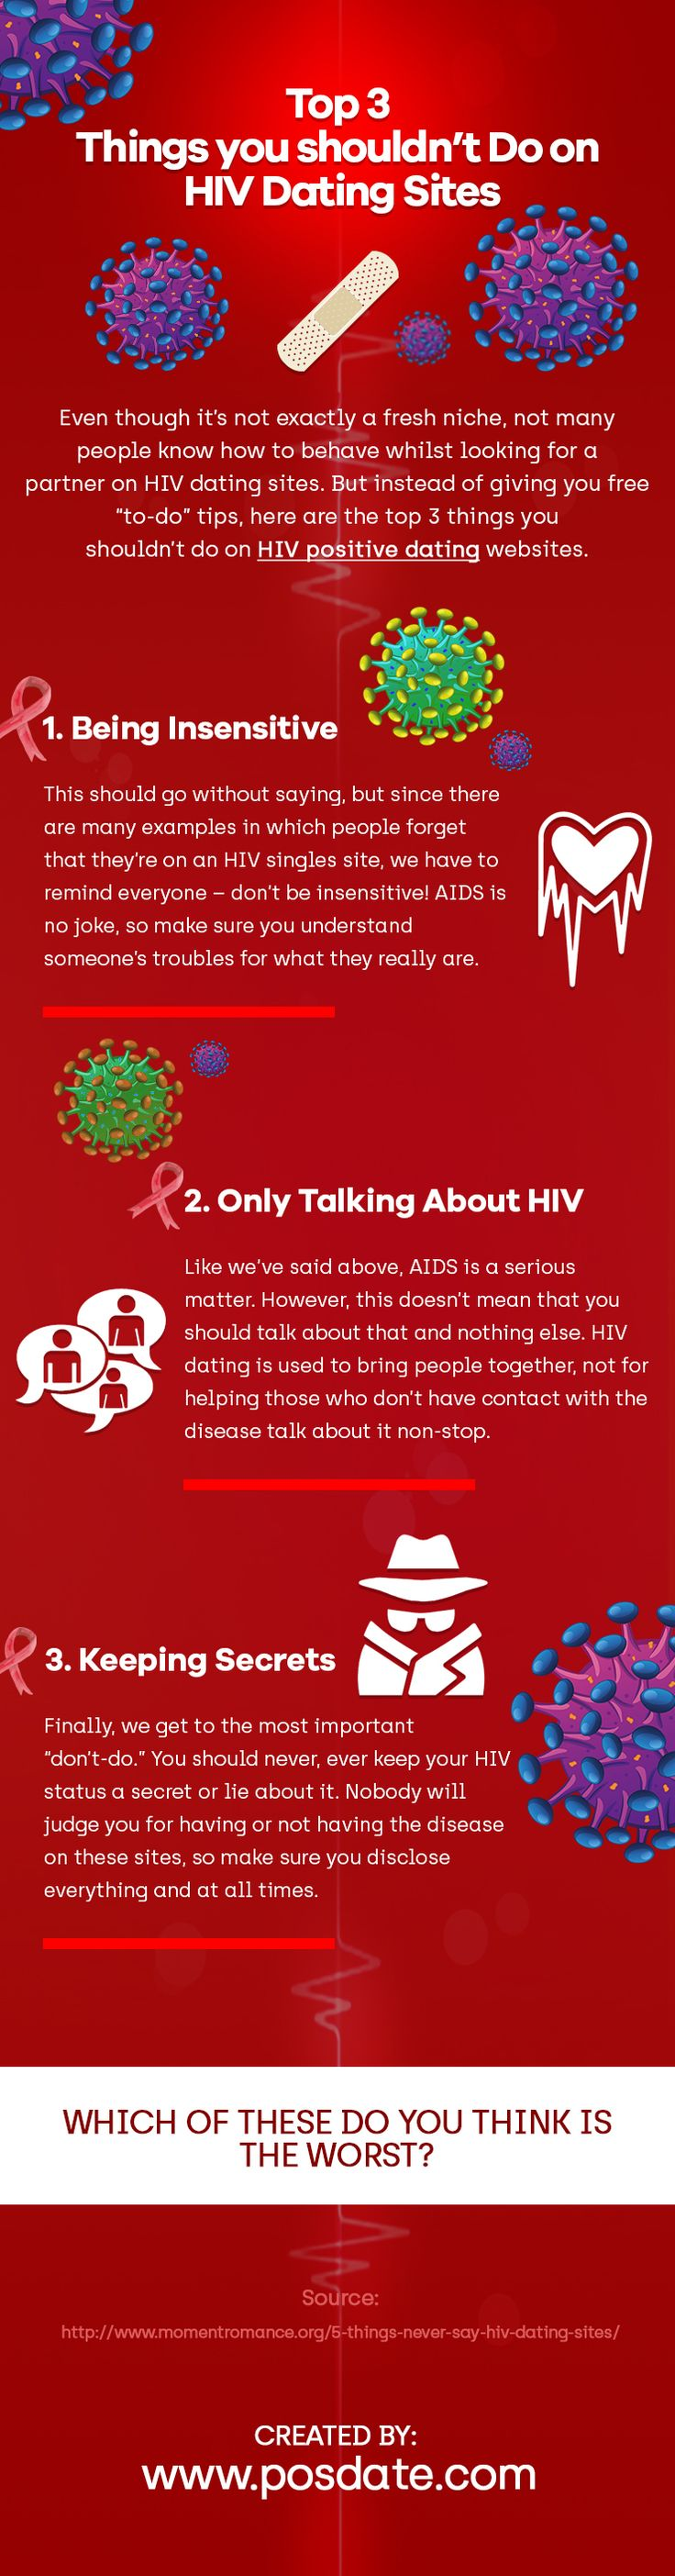 Have you been spending a lot of time on HIV dating sites? Here's what you shouldn't do.